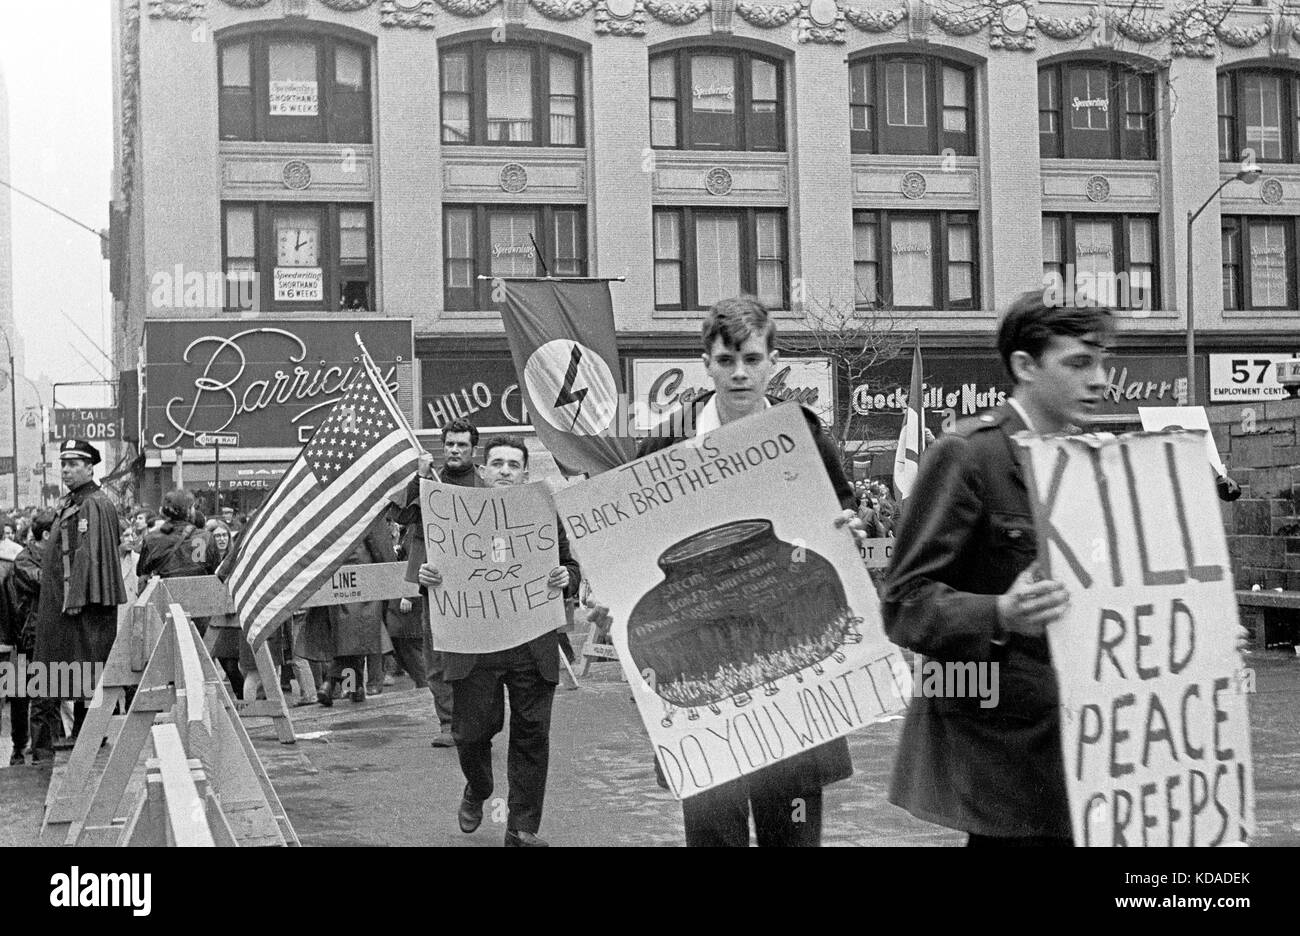 Demonstration in New York city, April, 1969. - Stock Image